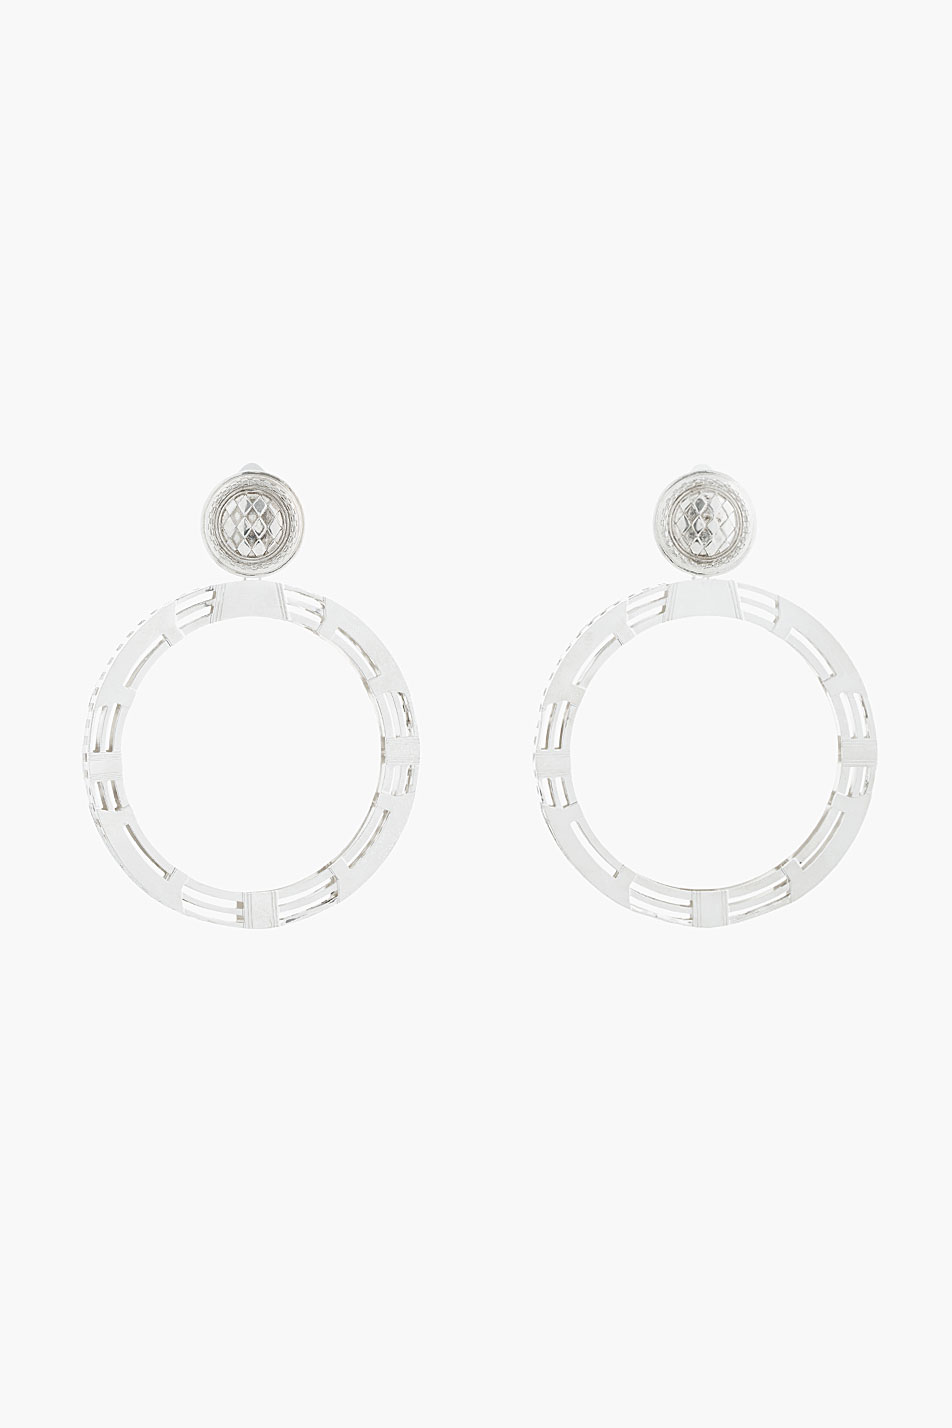 Balmain silver hollow hardware clip-on hoop earrings